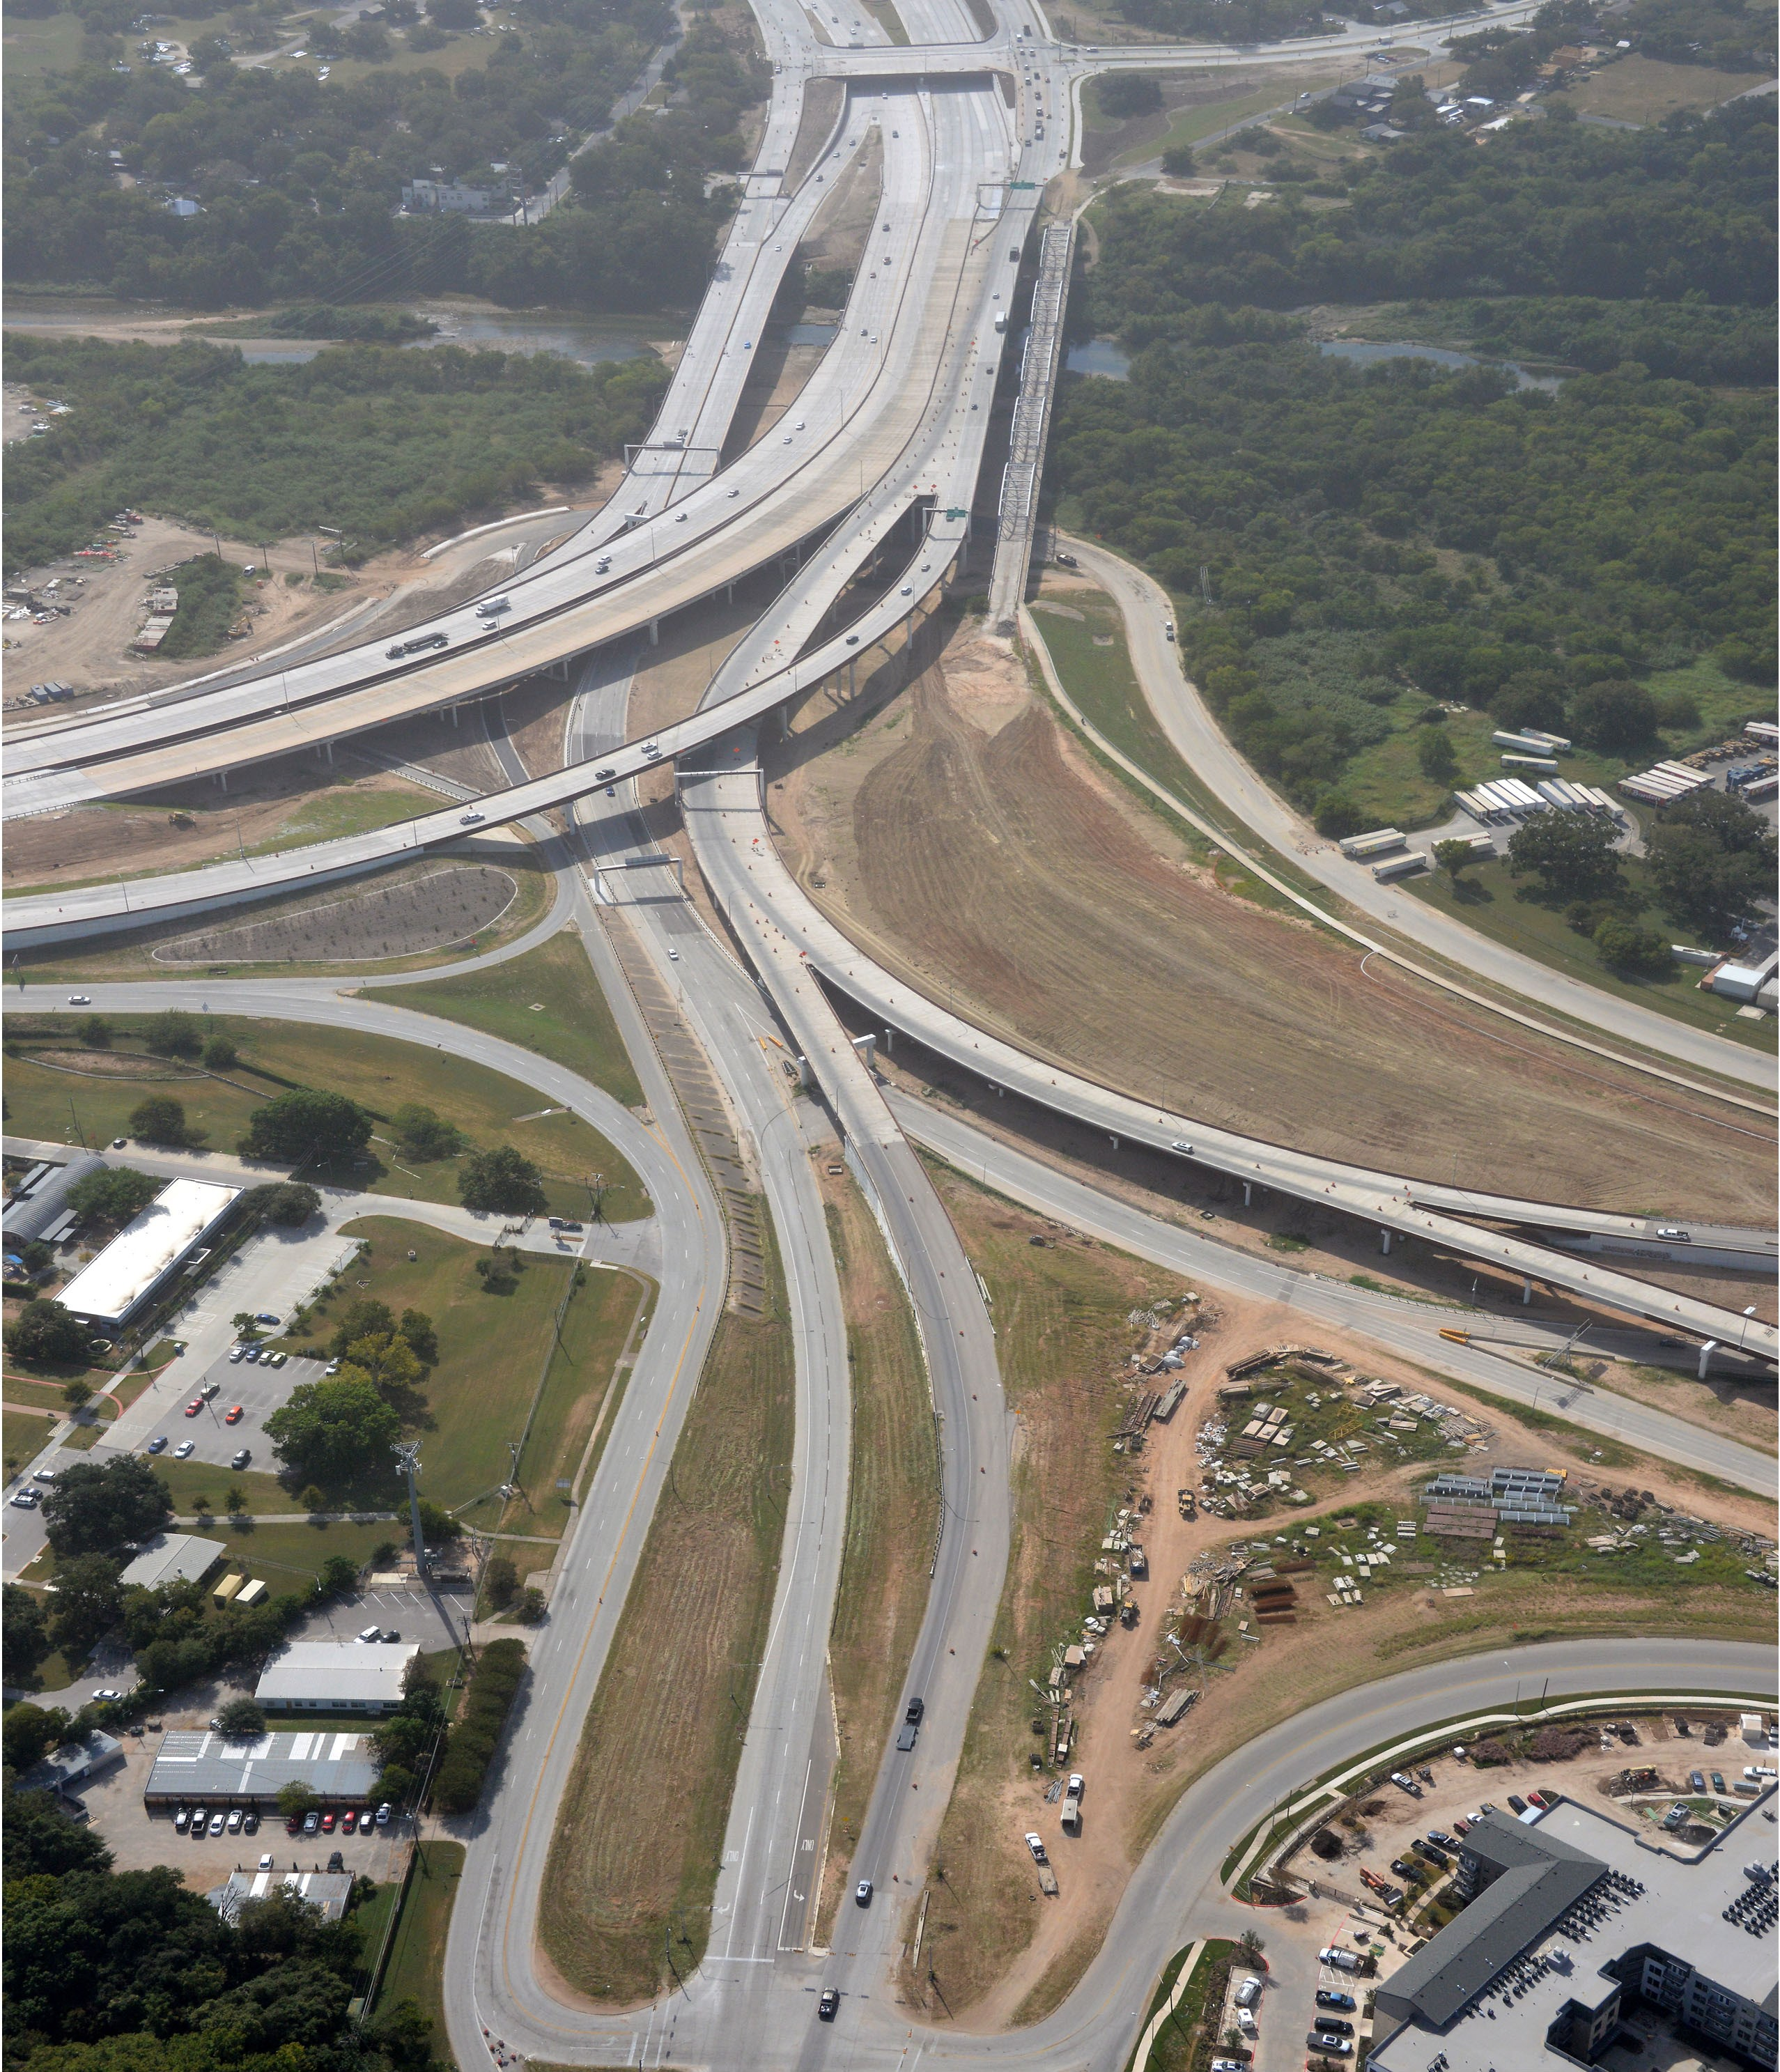 Aerial view of the Airport Blvd interchange - Oct. 2020